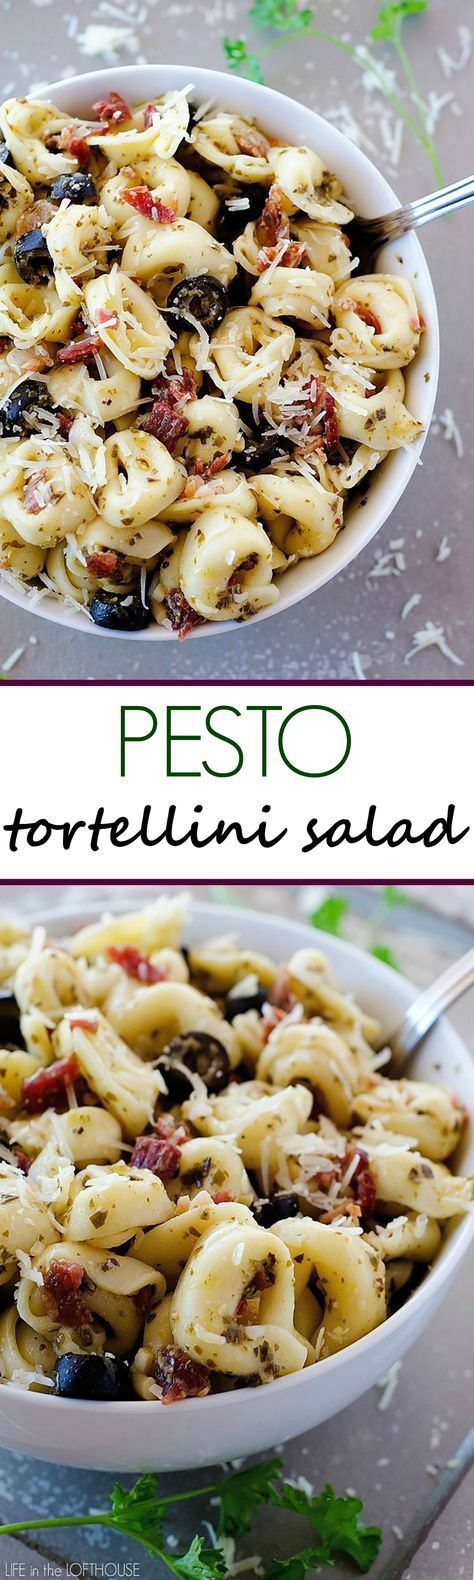 Pesto tortellini salad - sounds like a perfect salad to me!